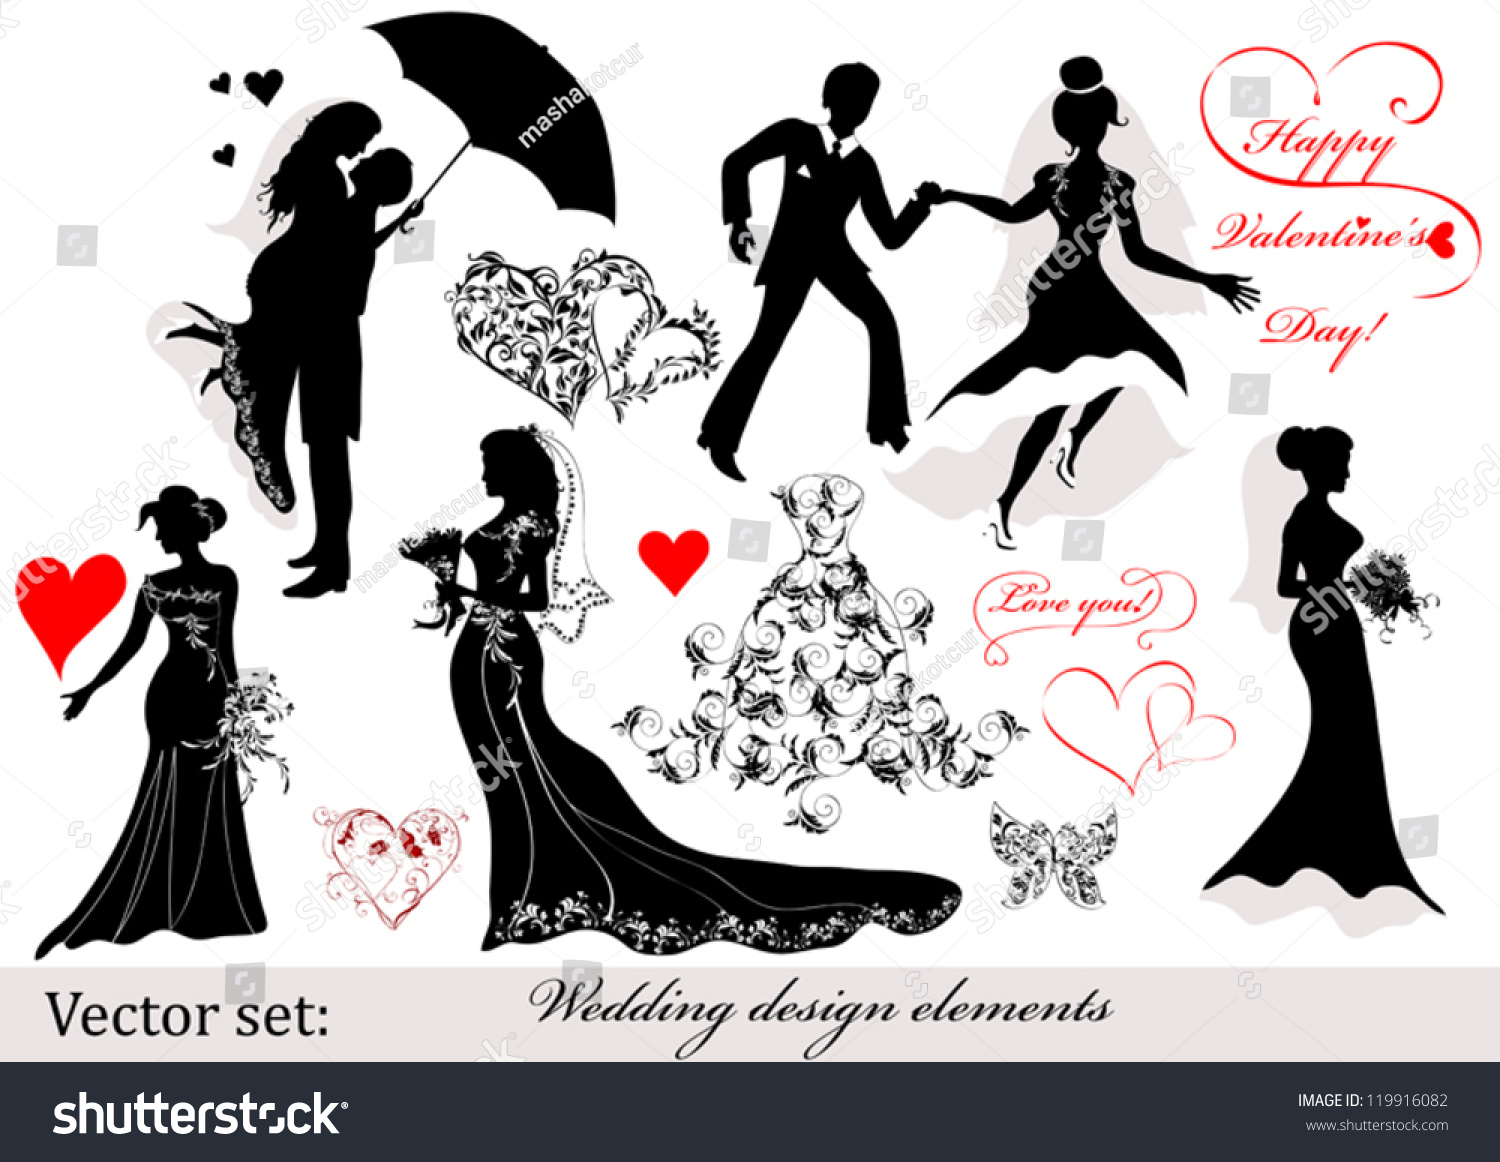 Message In Wedding Invitation is awesome invitations ideas